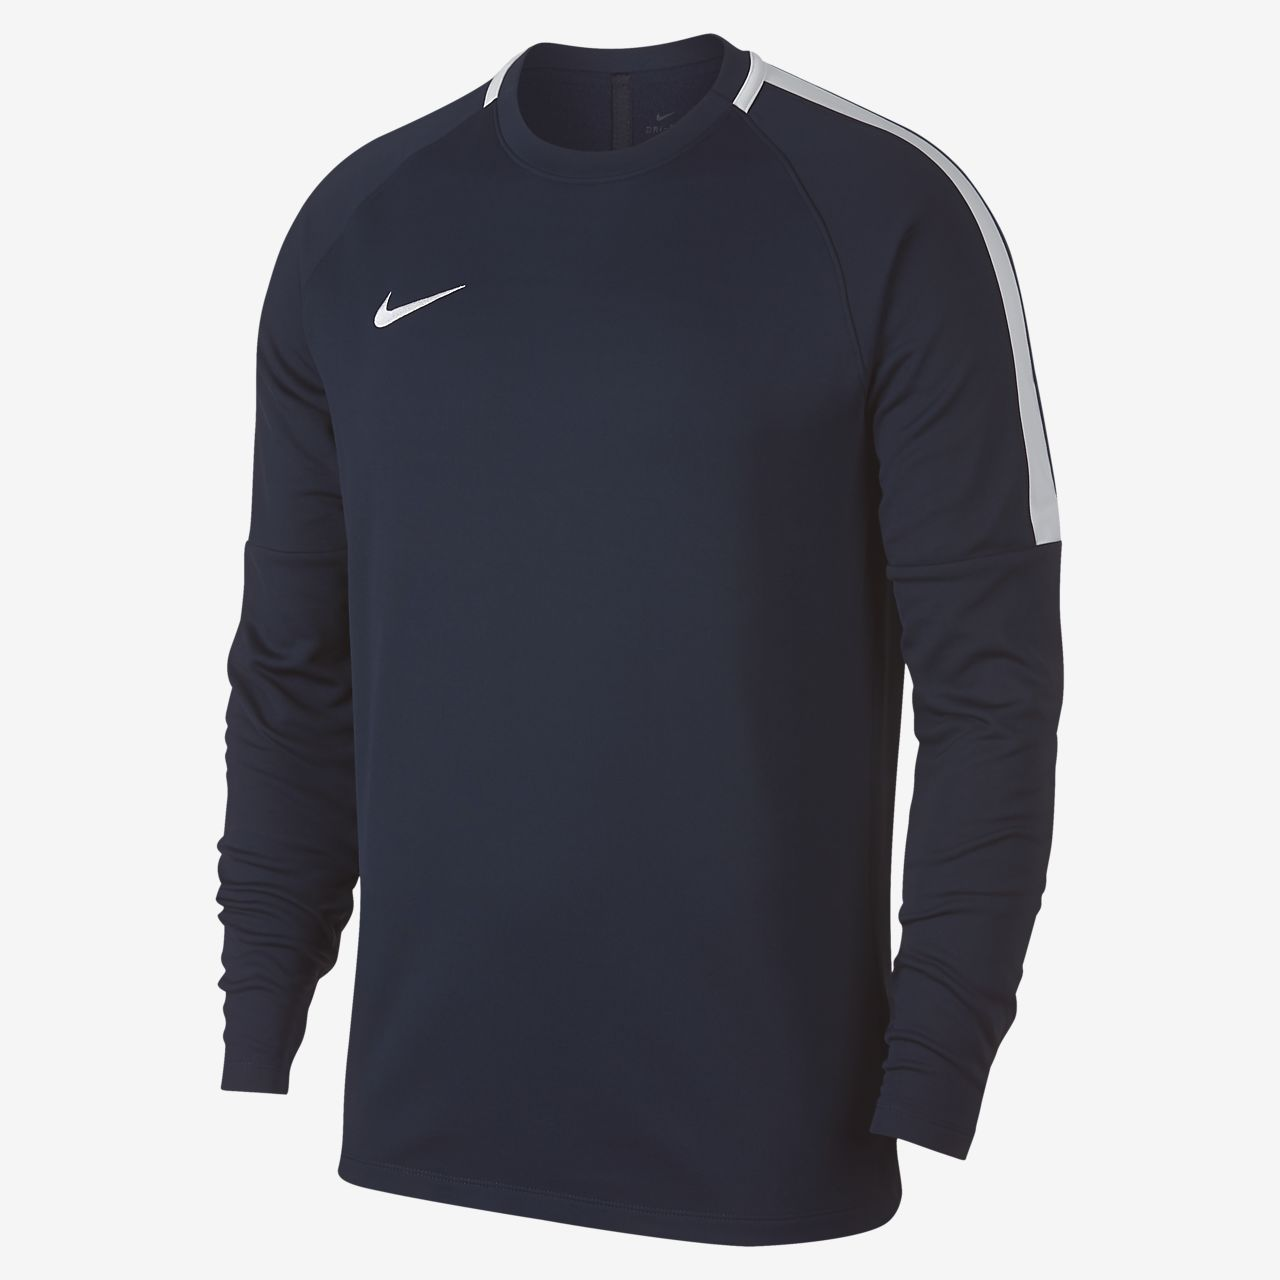 Academy It Felpa Uomo Fit Dri Calcio Da Nike wqnqHvX0